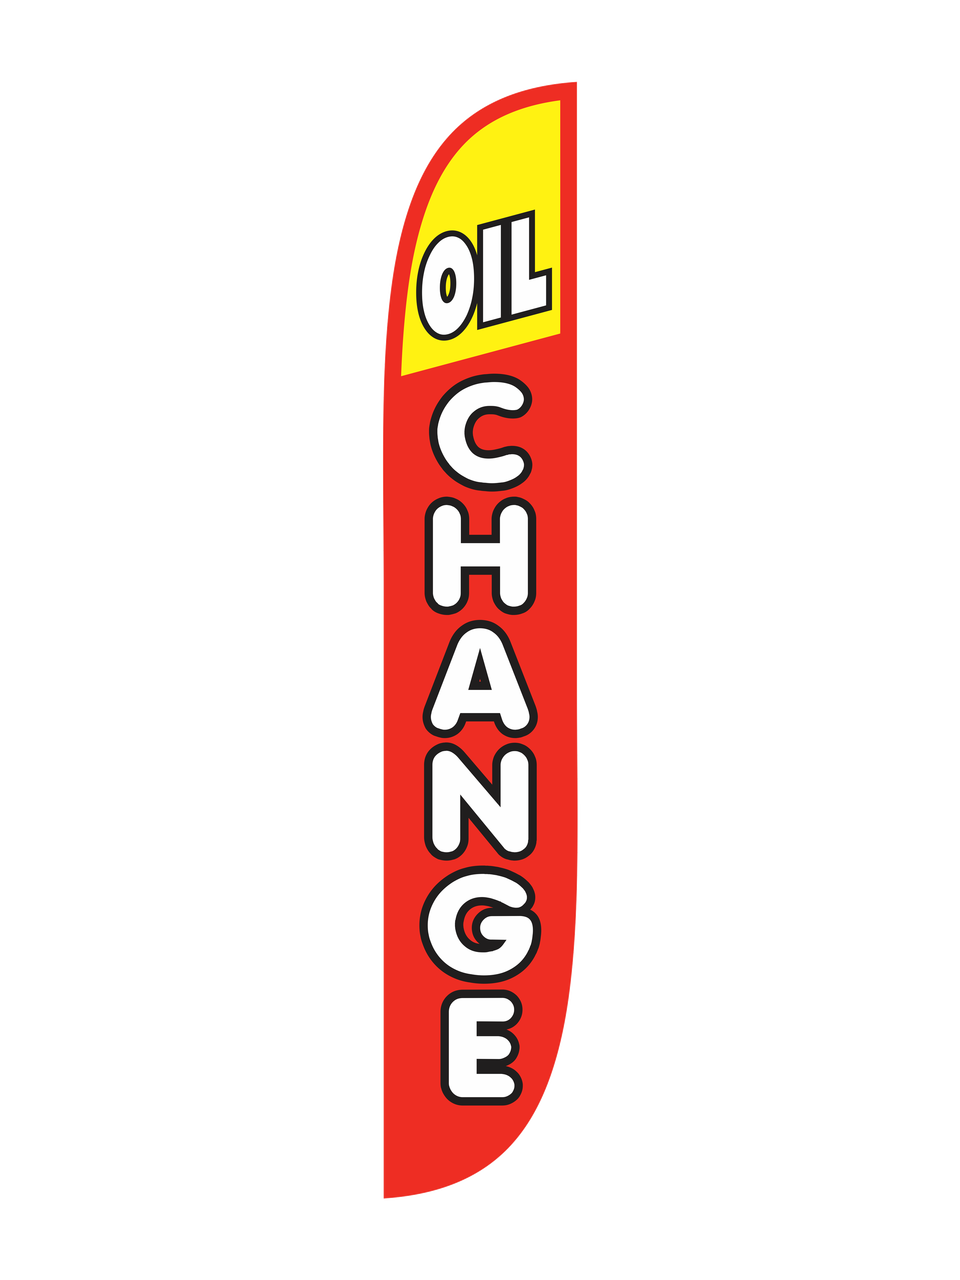 Oil Change Red Amp Yellow Feather Flag